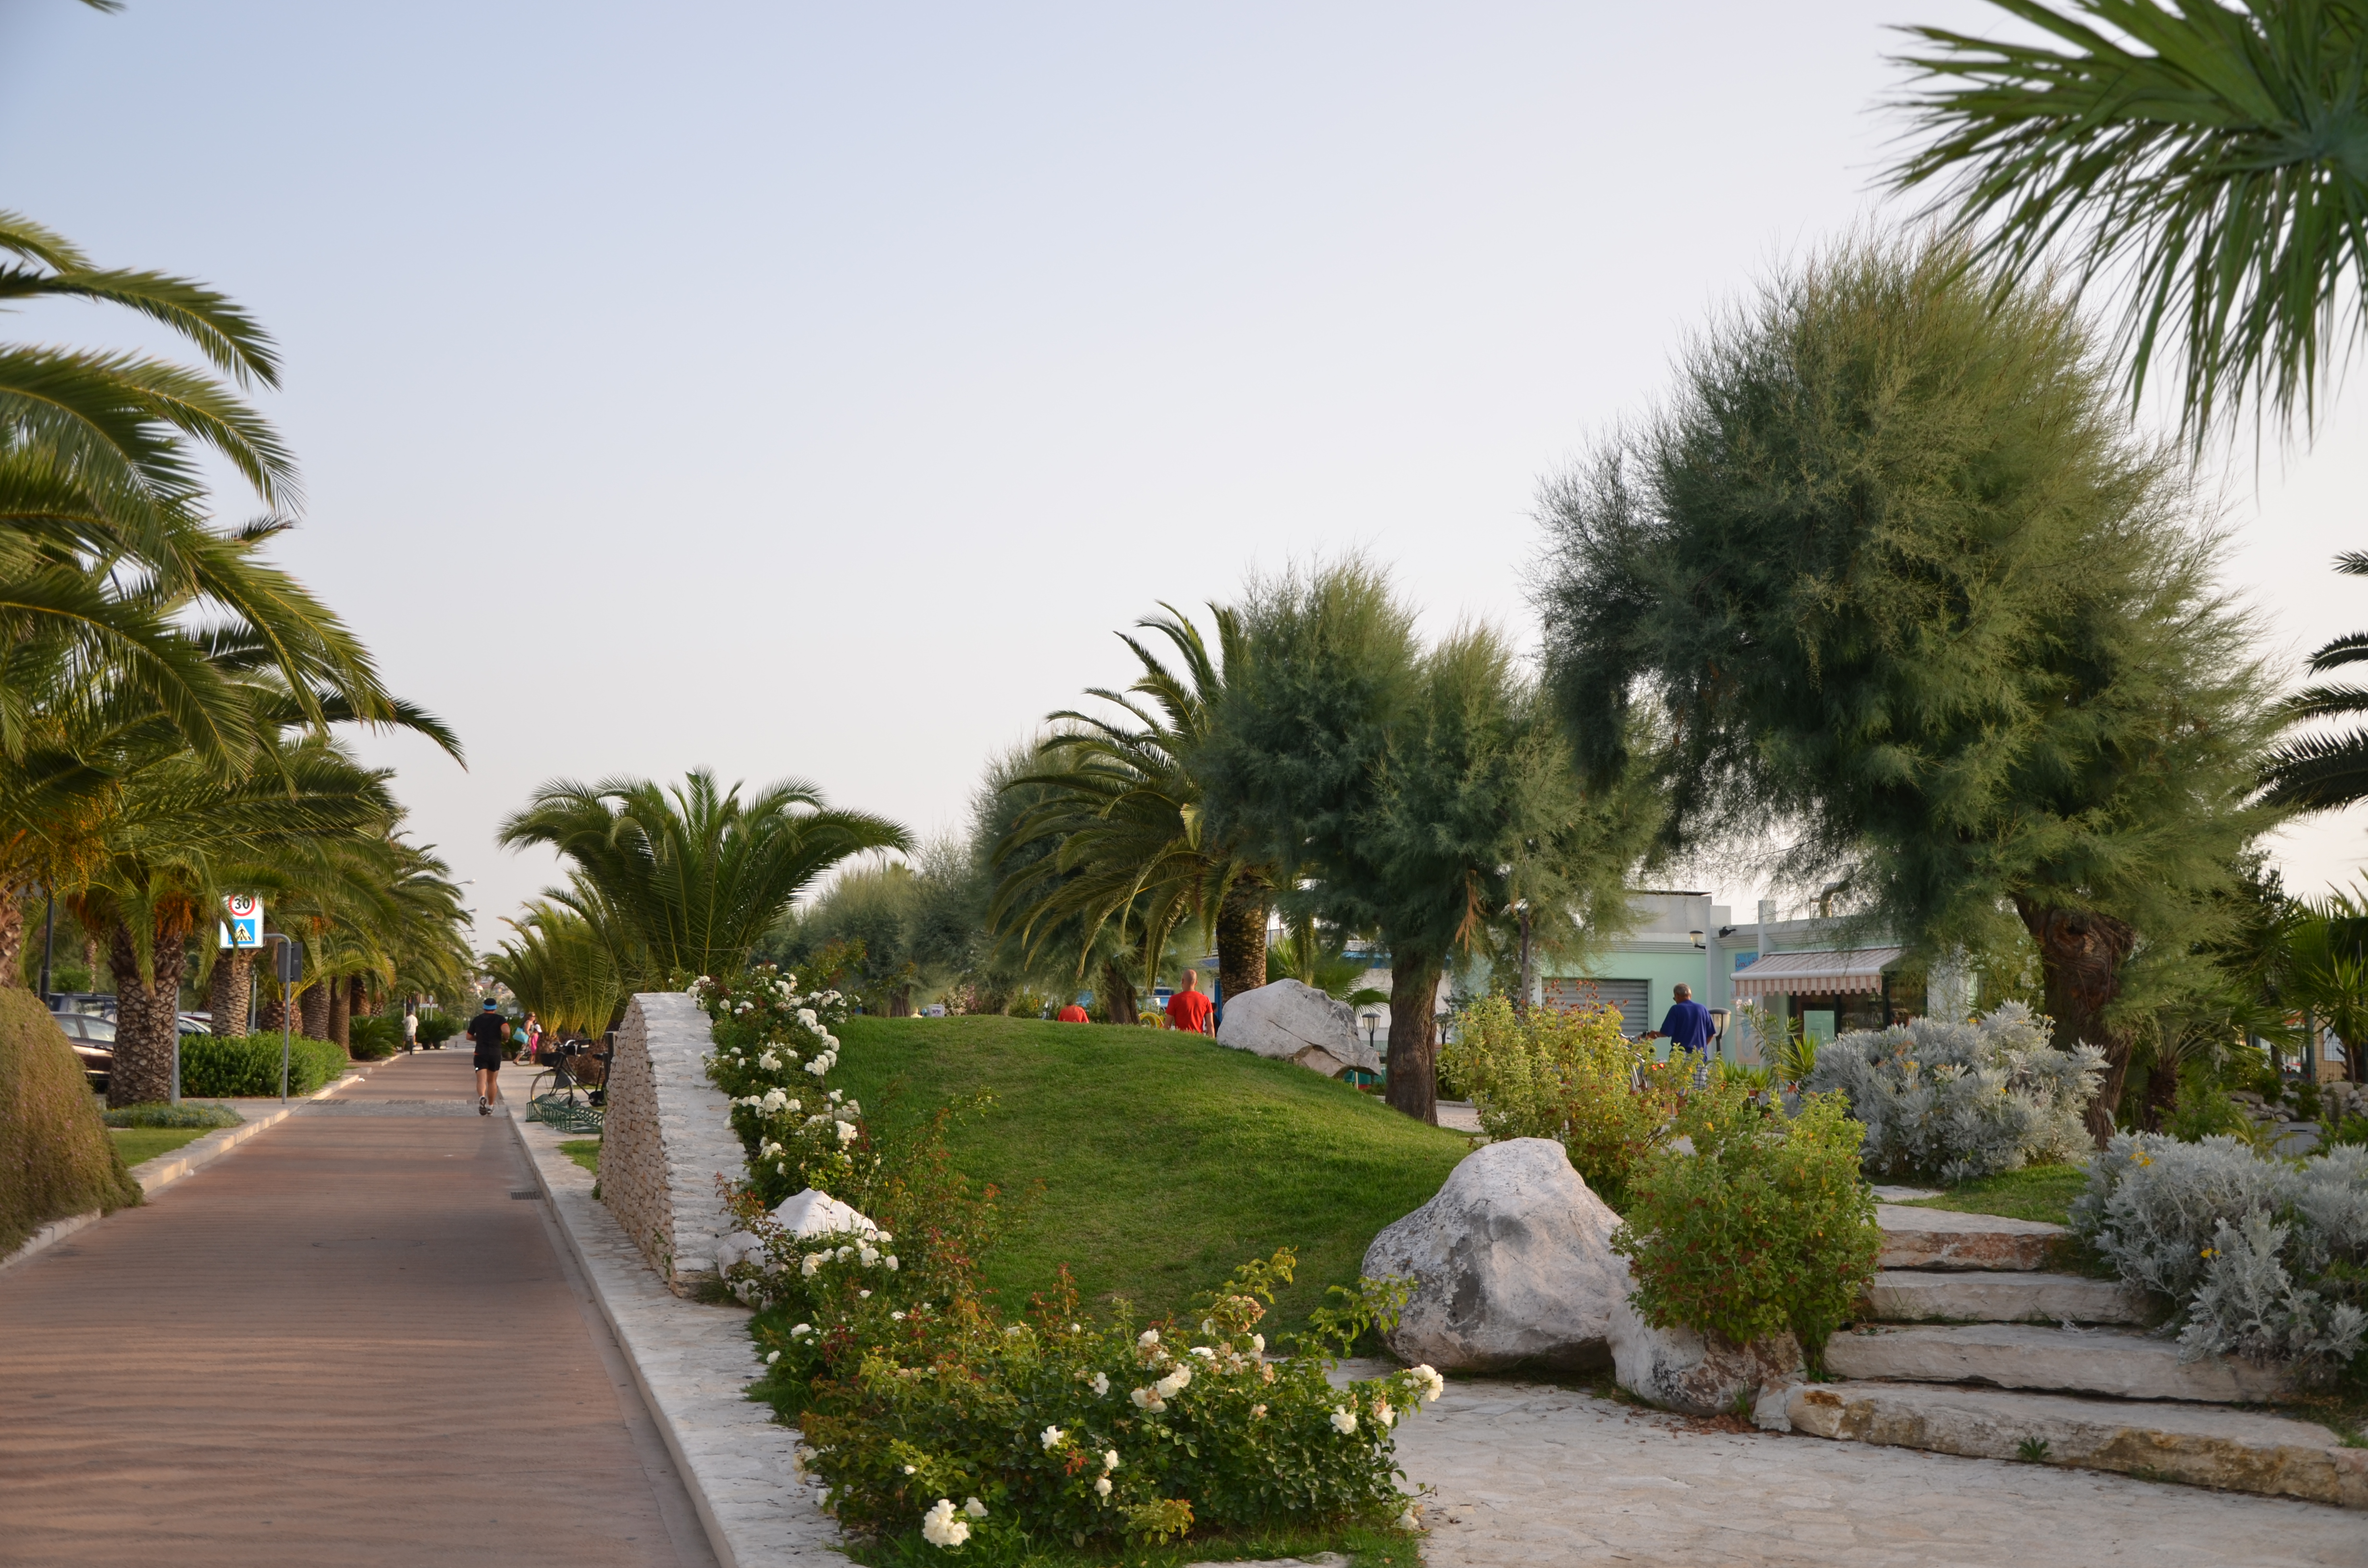 Cycling lane along the seafront